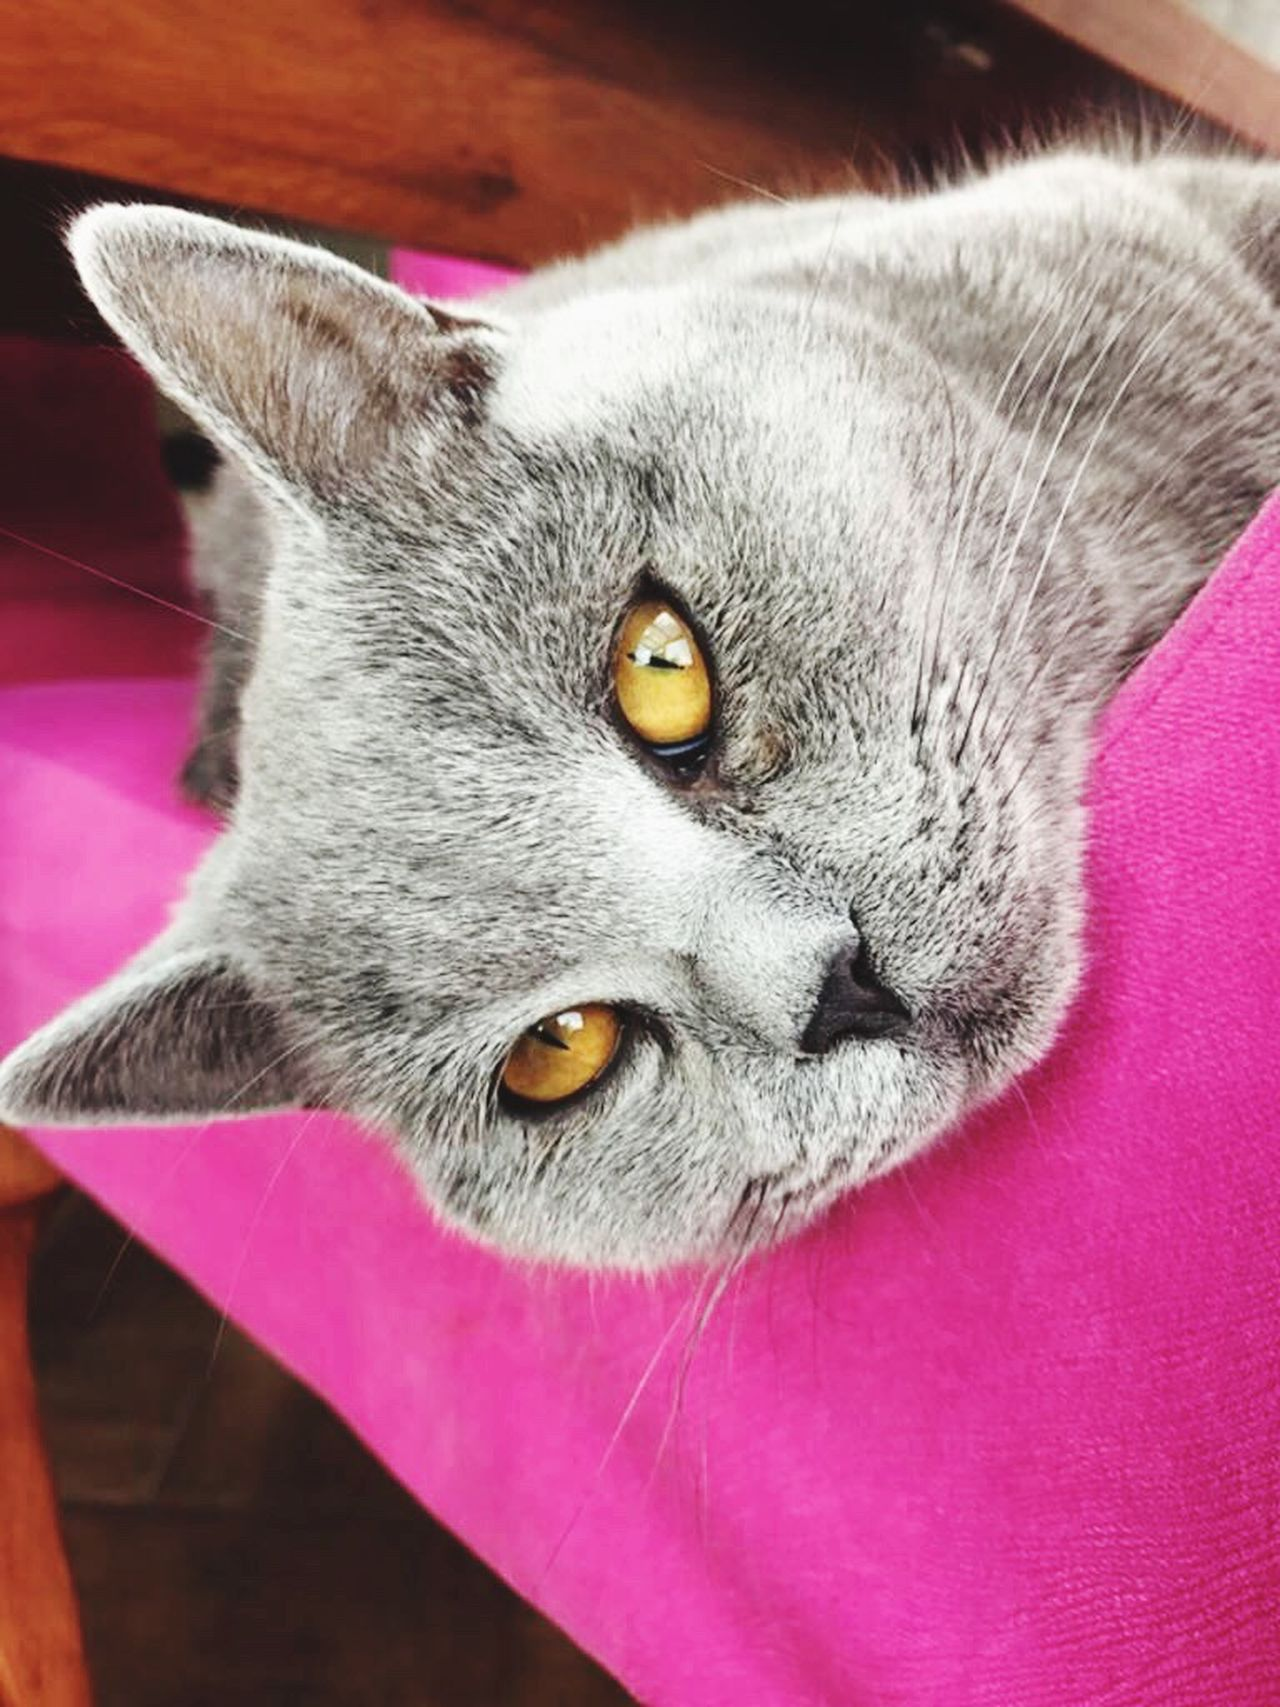 Cat in pink Pets Domestic Cat Domestic Animals One Animal Feline Mammal Portrait Cat Looking At Camera Indoors  Whisker No People Close-up Yellow Eyes Day